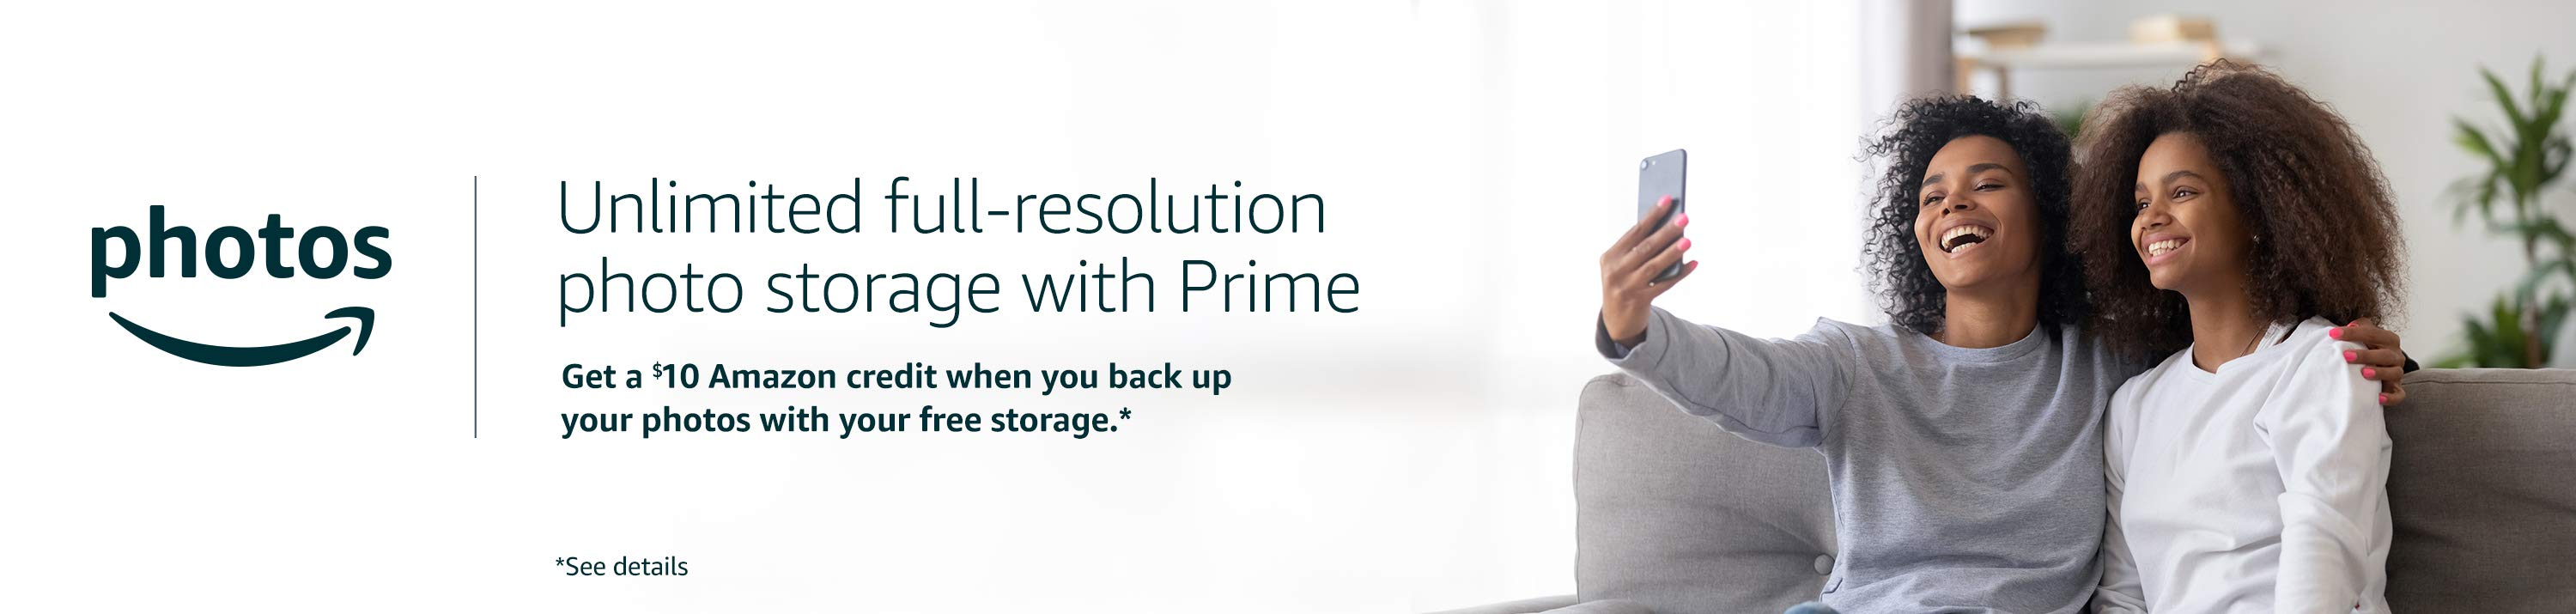 Get a $10 Amazon credit when you back up your photos with your free storage.